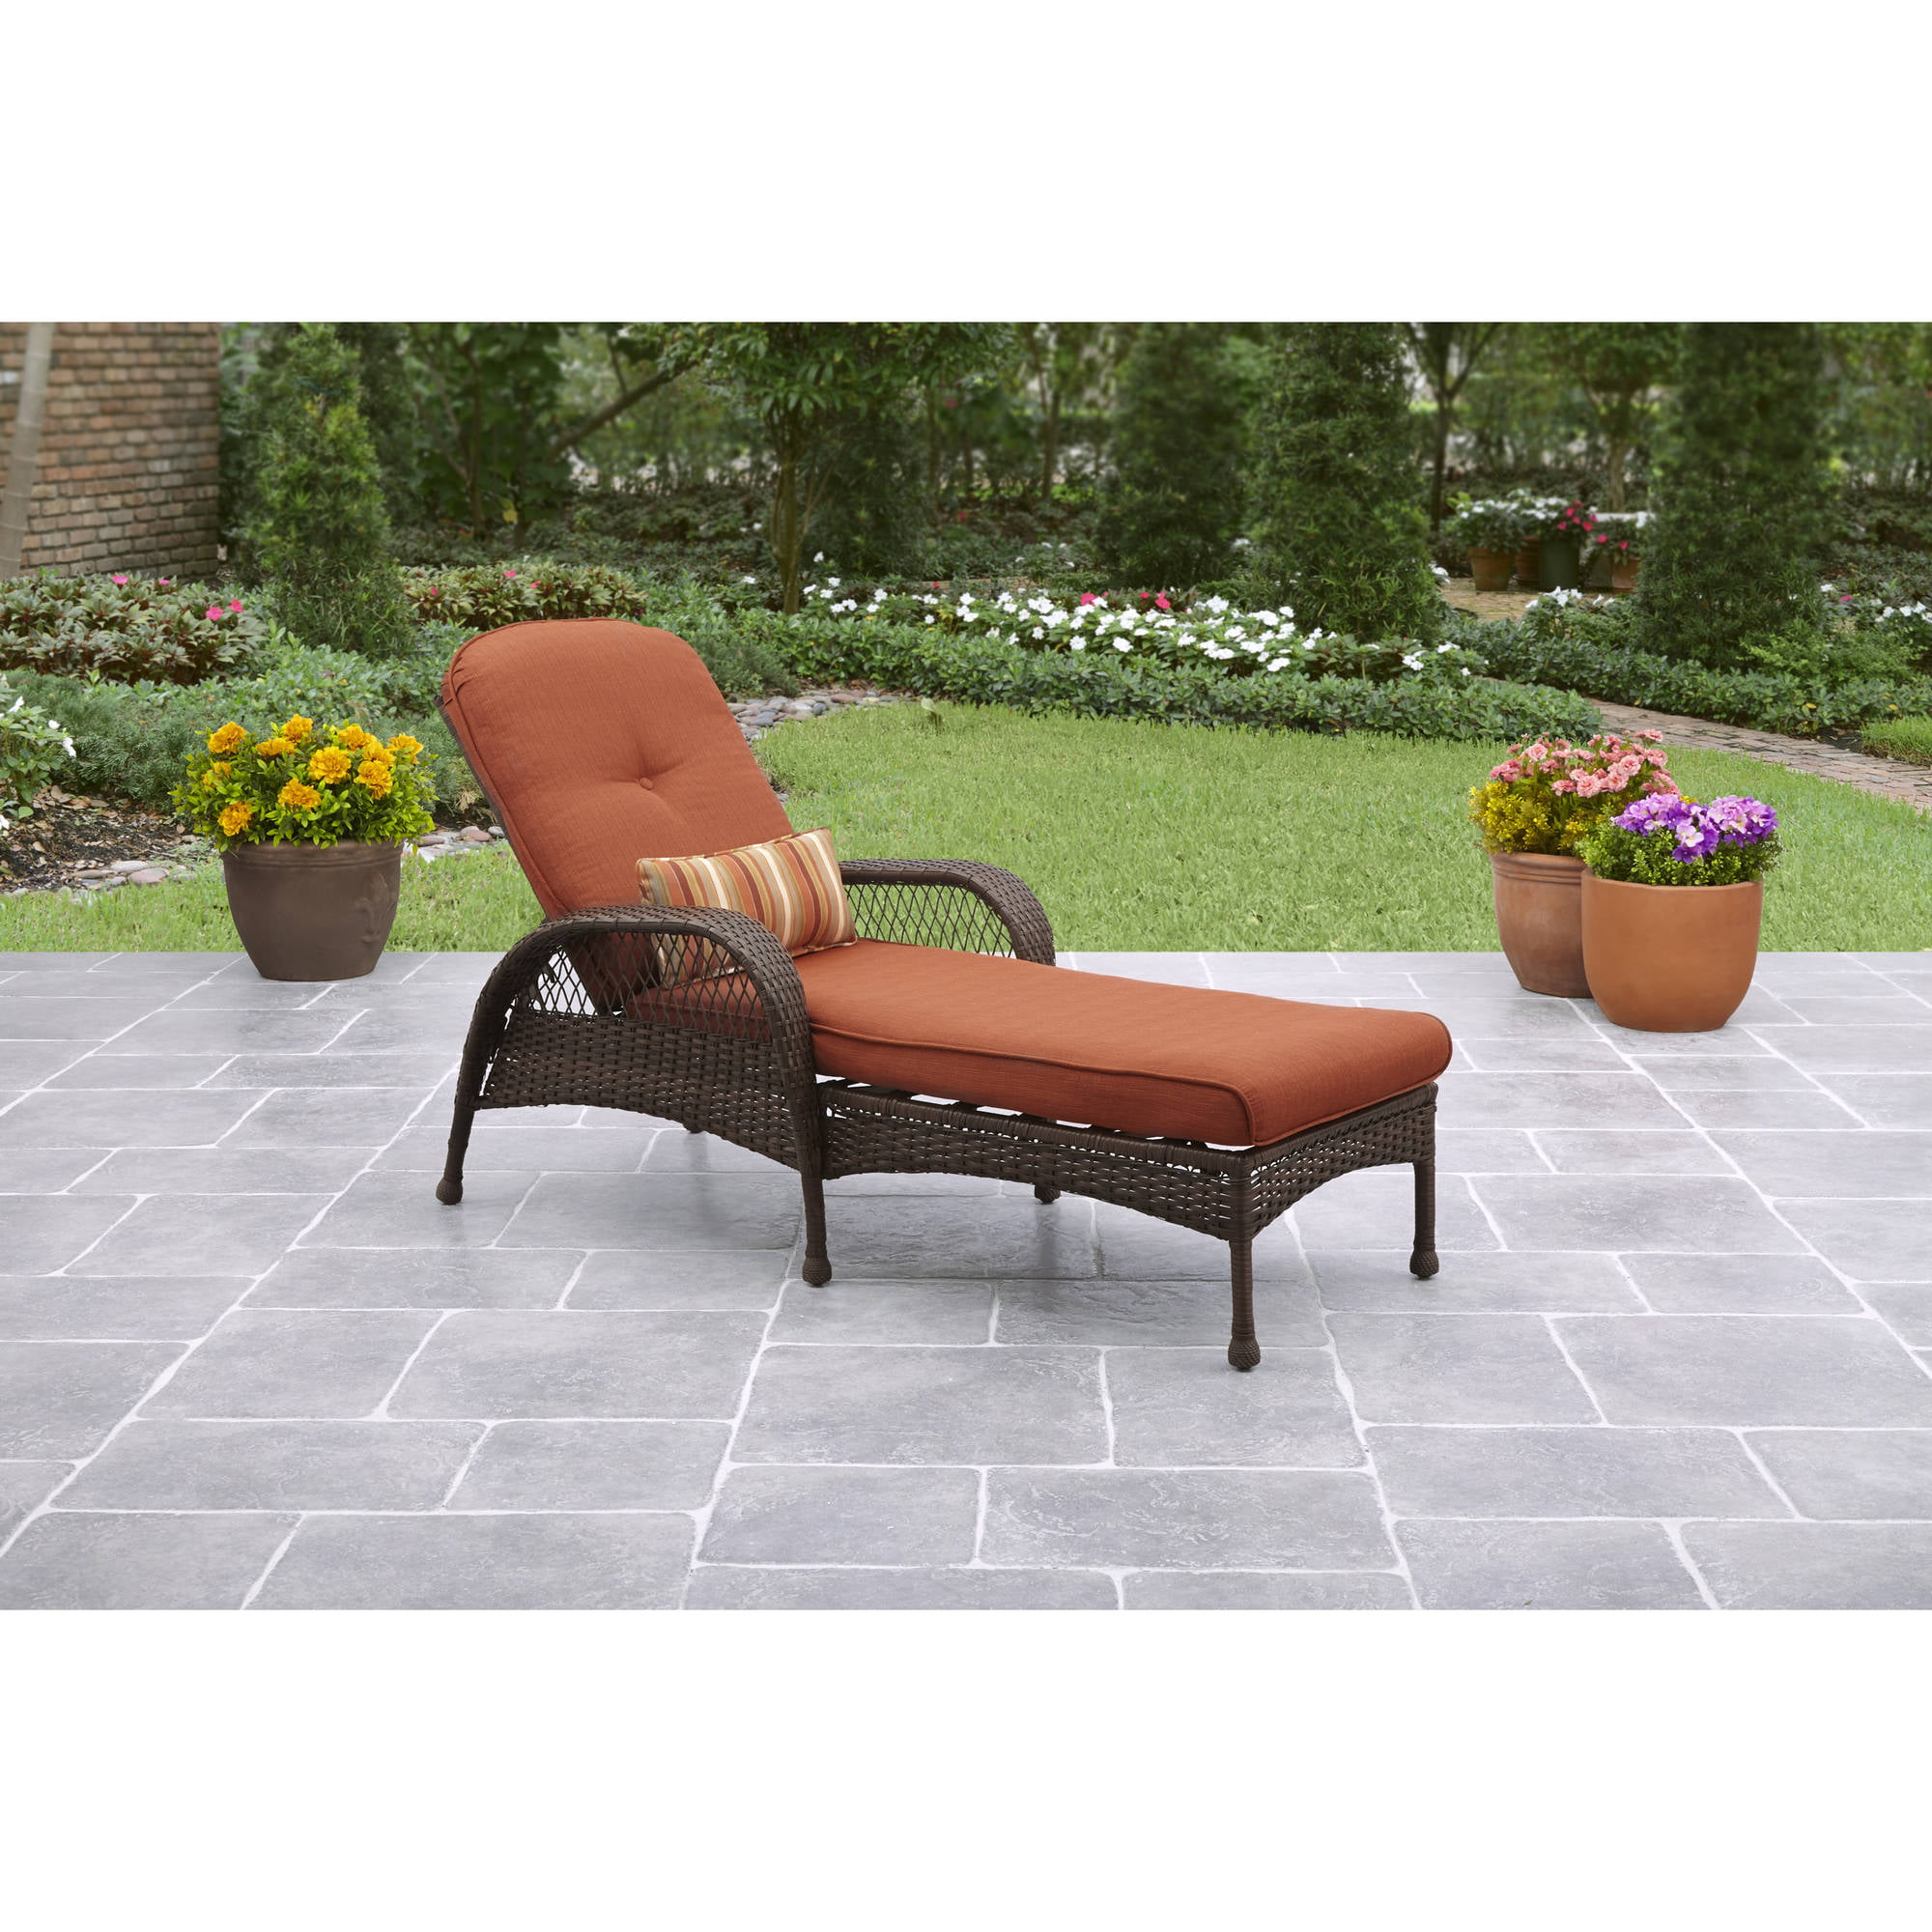 chaise sears lounge cushions of about outdoor fresh in furniture agreeable sofa costco ahfhome patio interesting